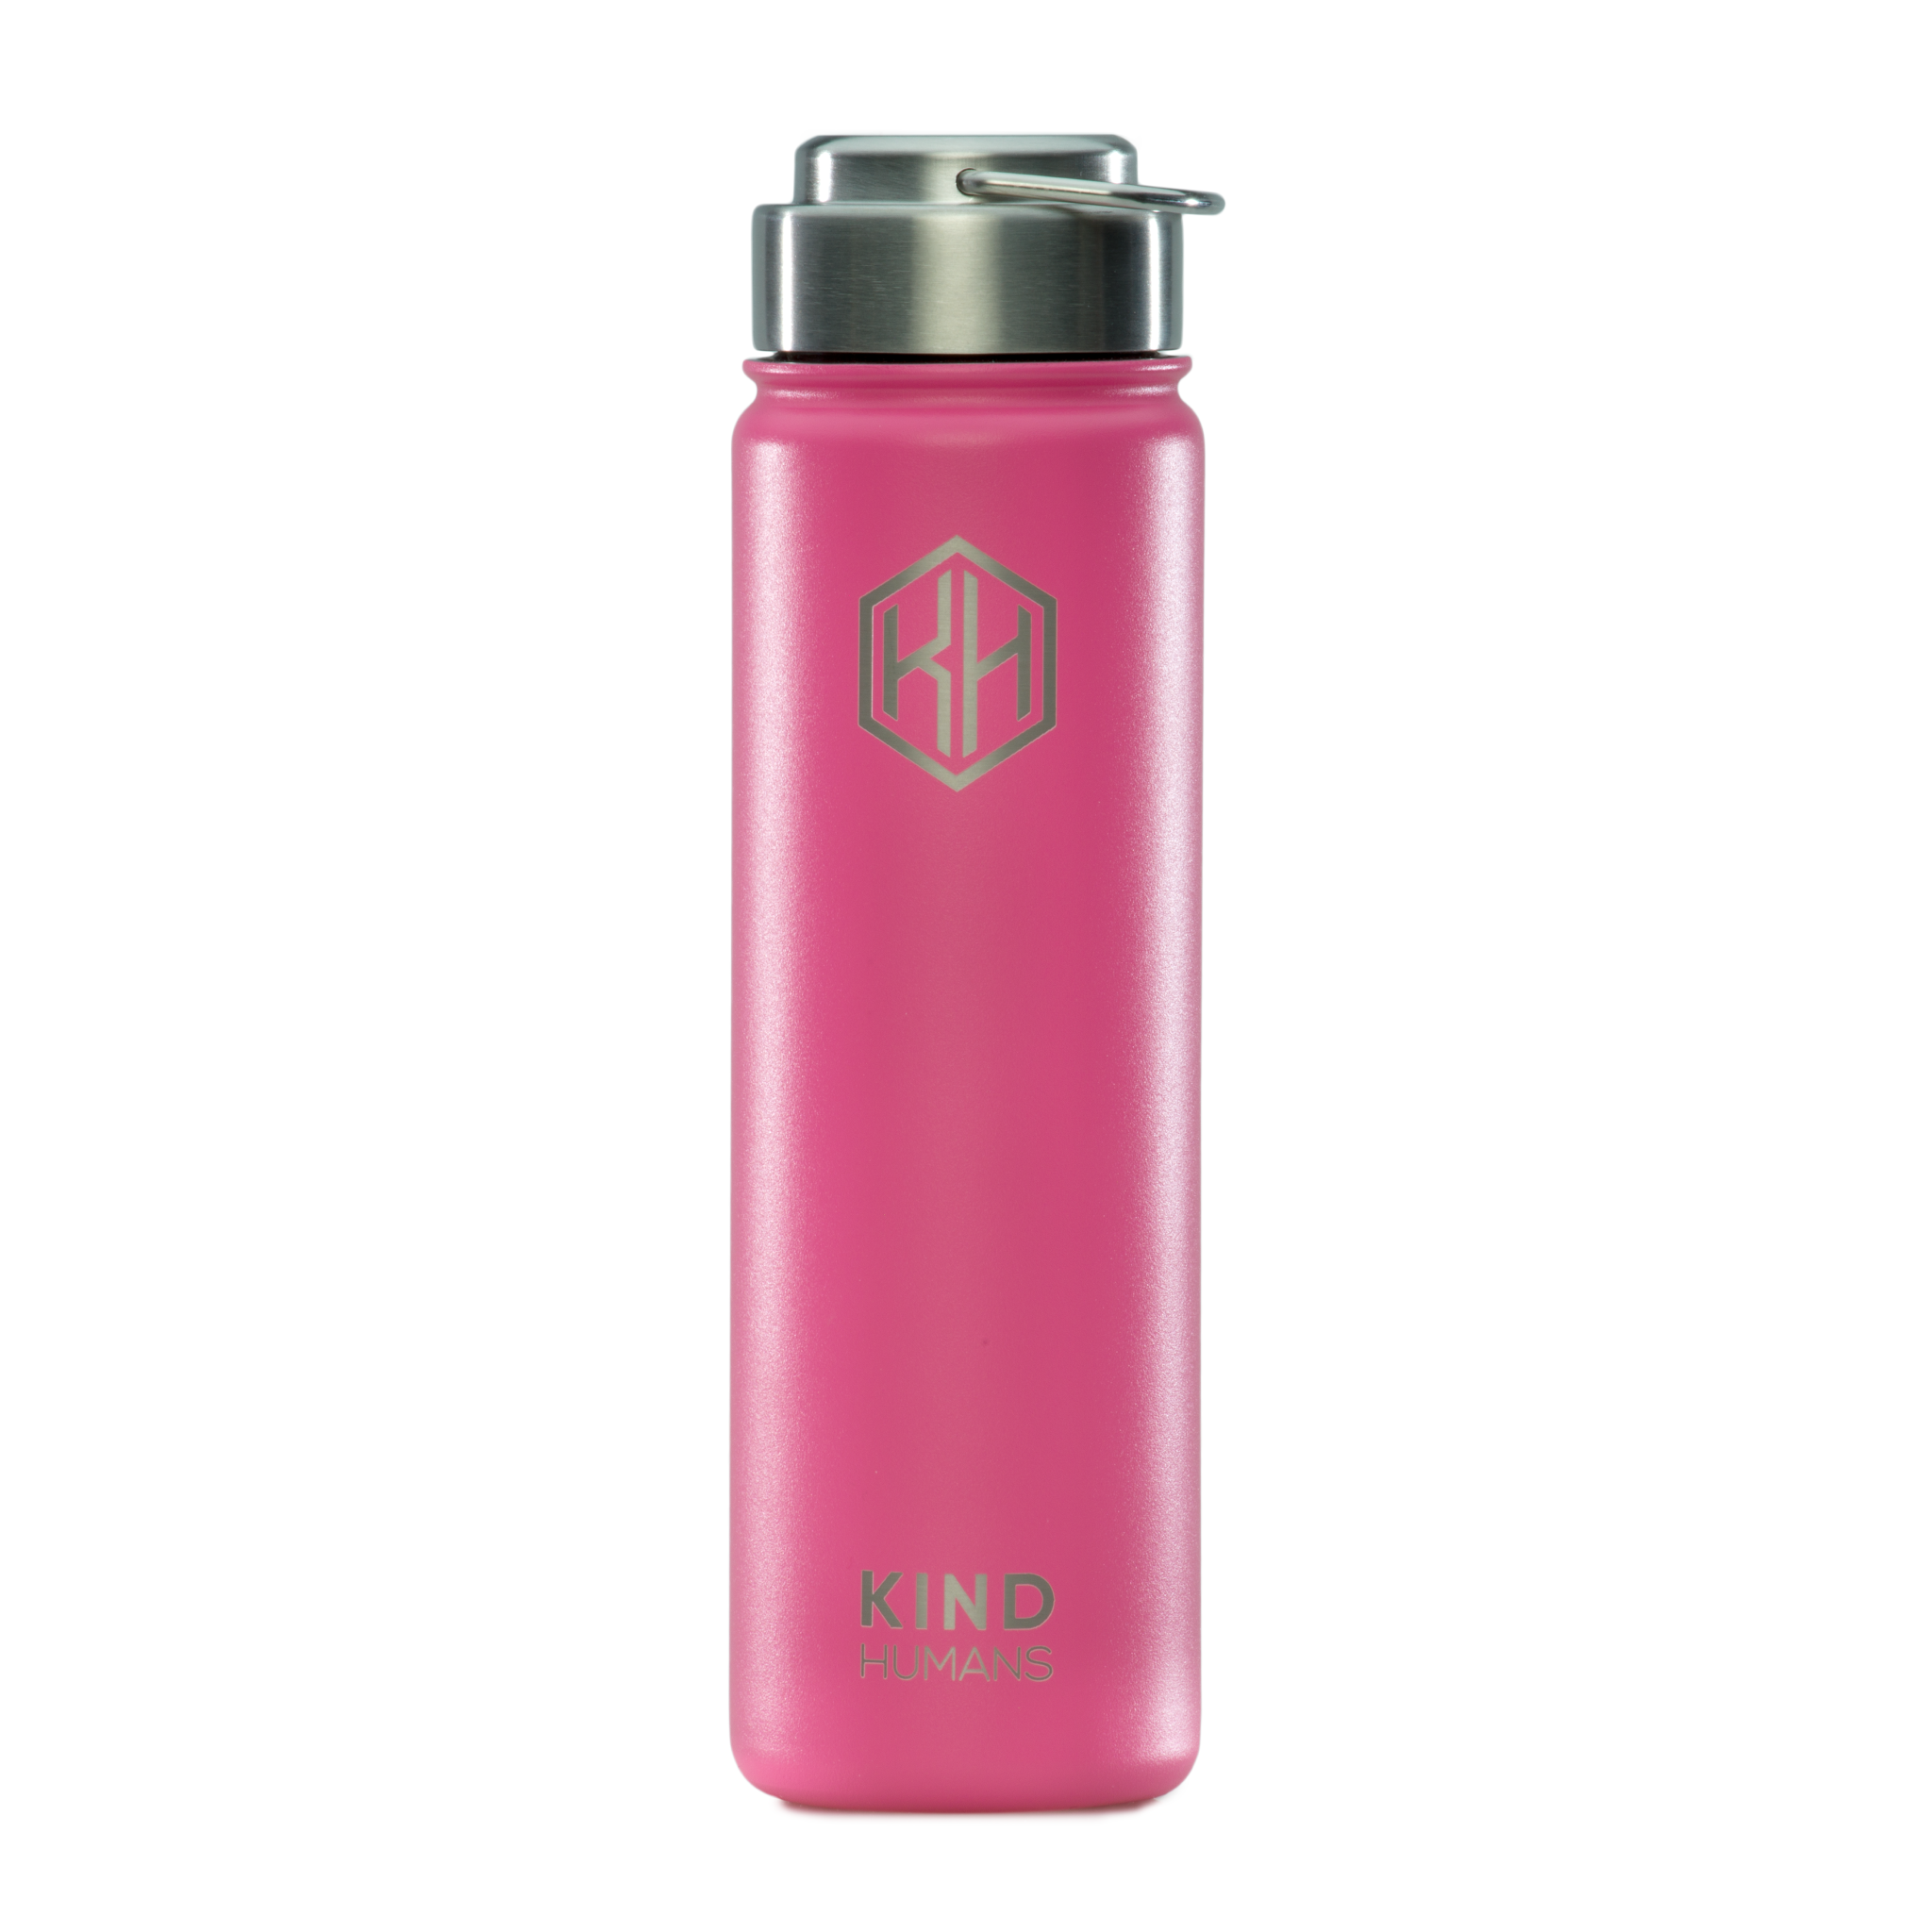 Pink 22oz. Stainless Steel Water Bottle - The Pink Dolphin - Kind Humans